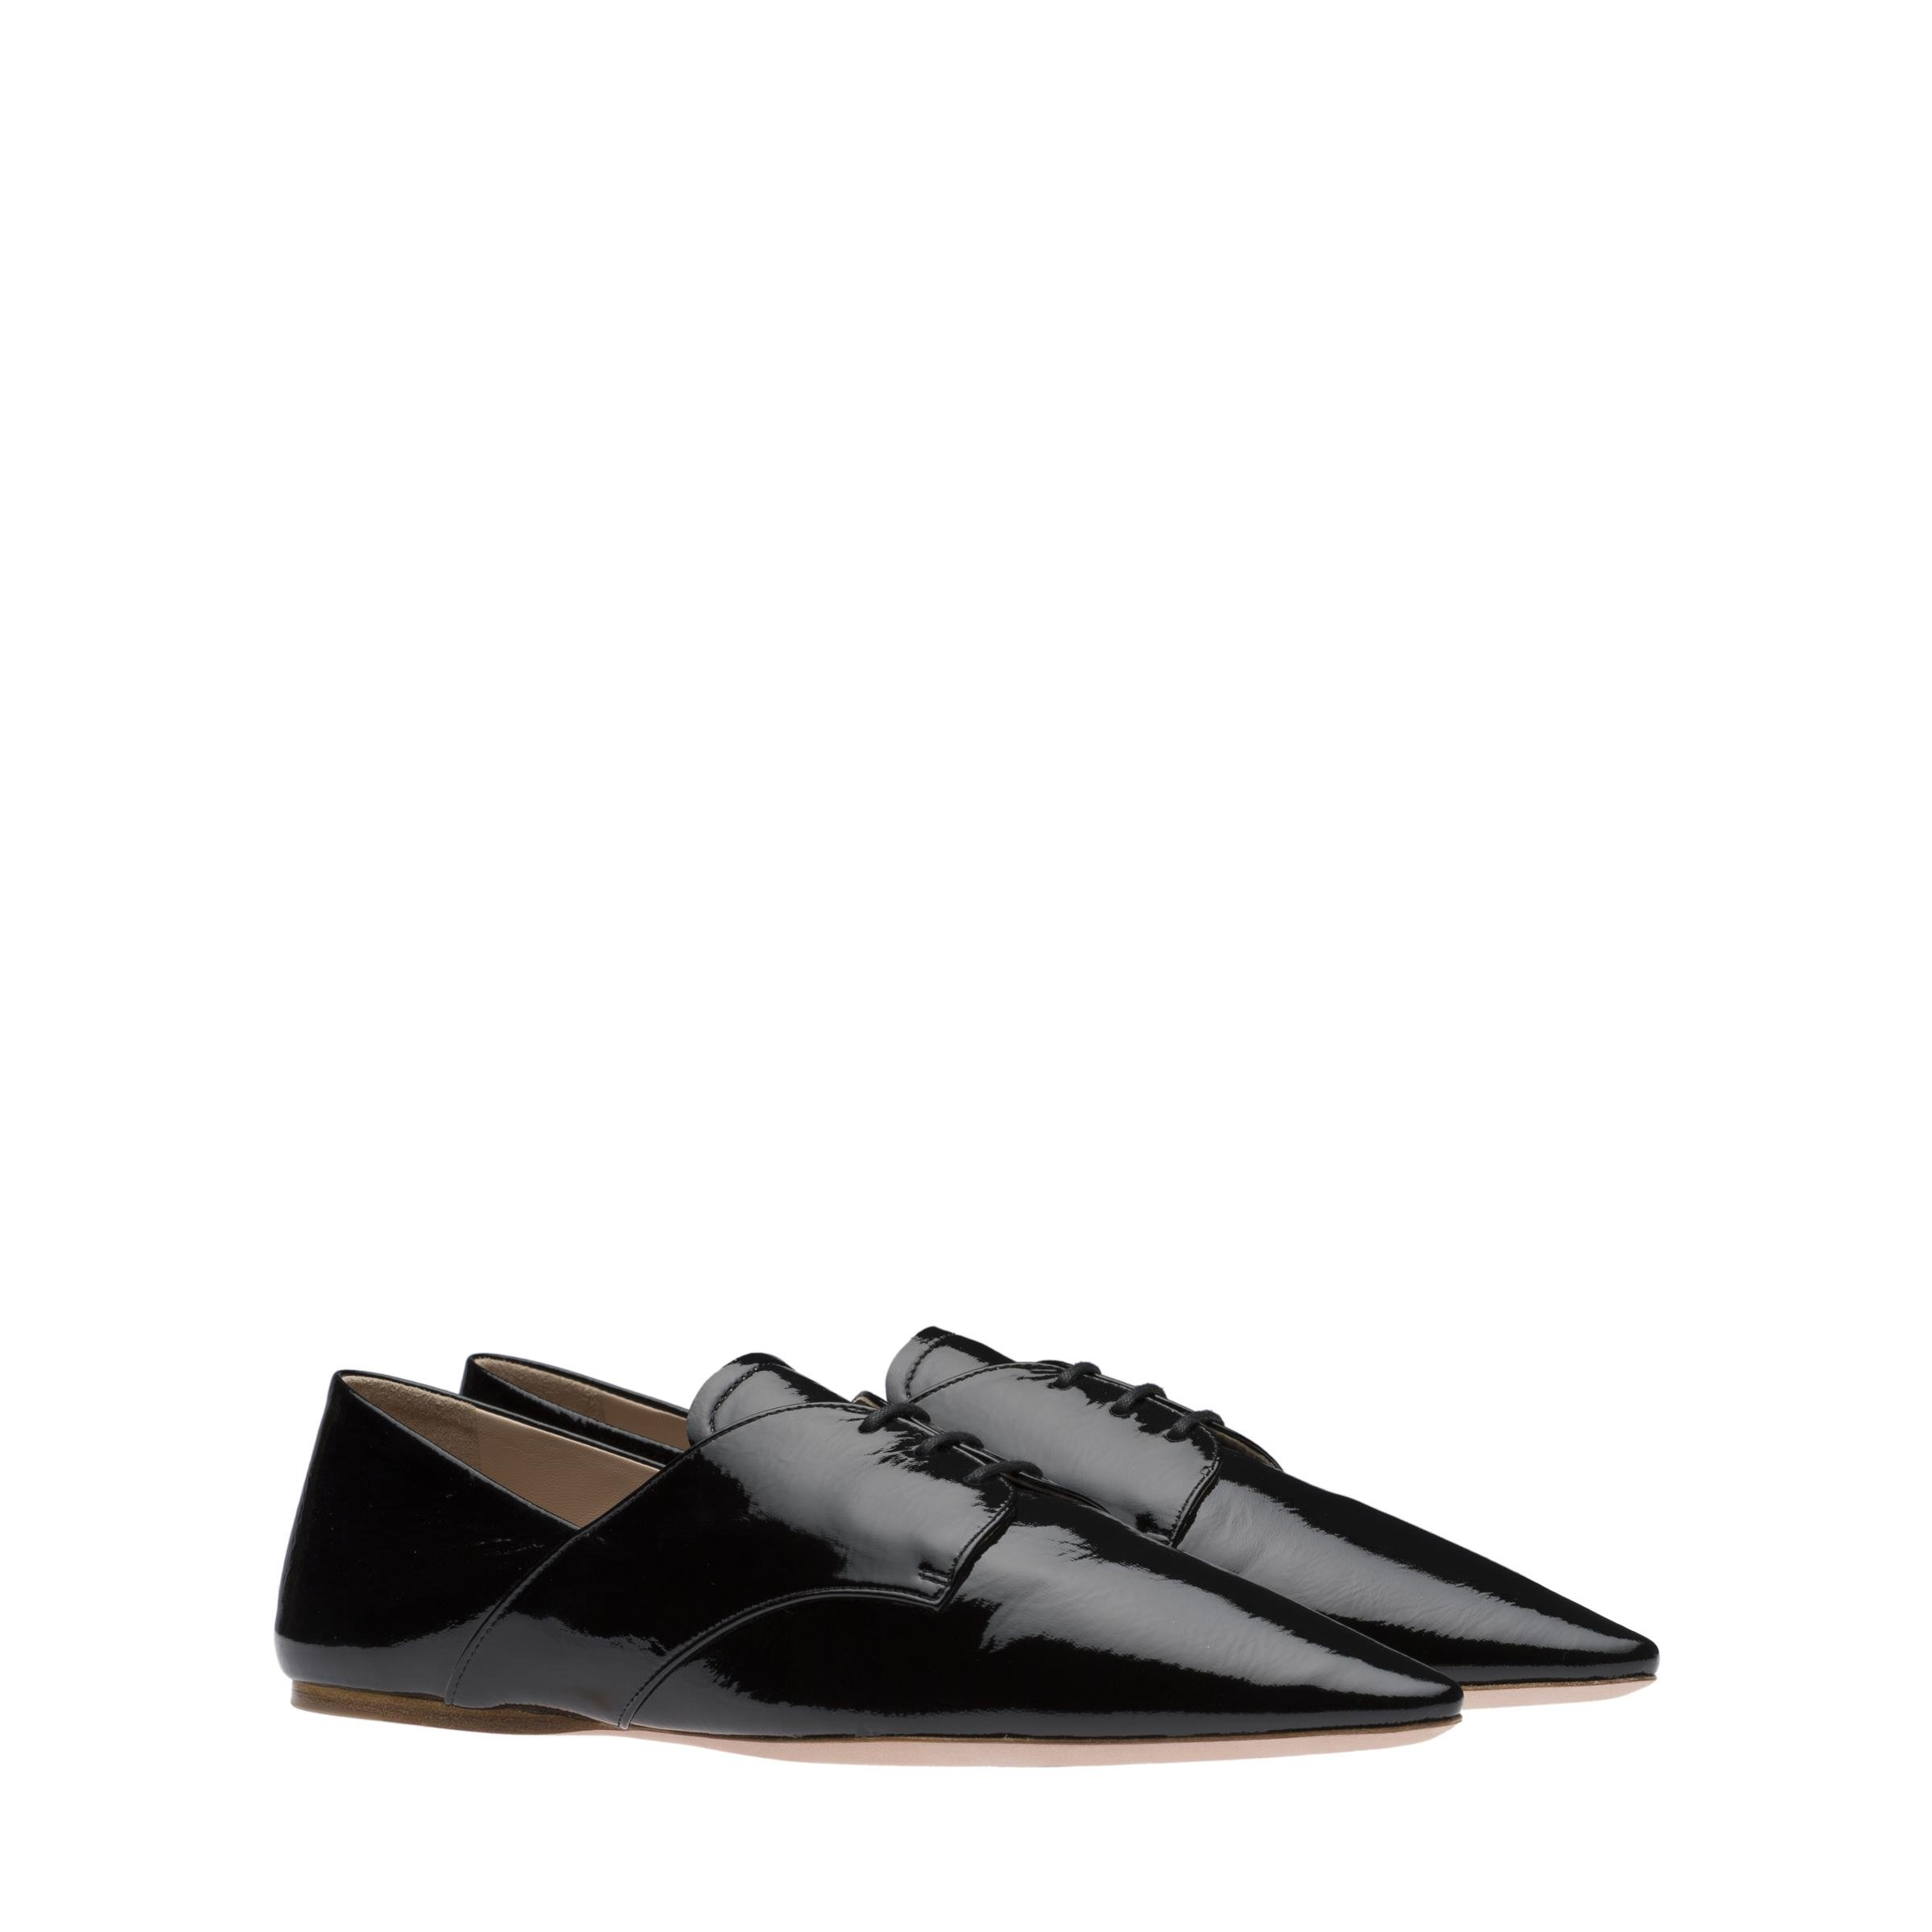 Patent Leather Laced Shoes Women Black